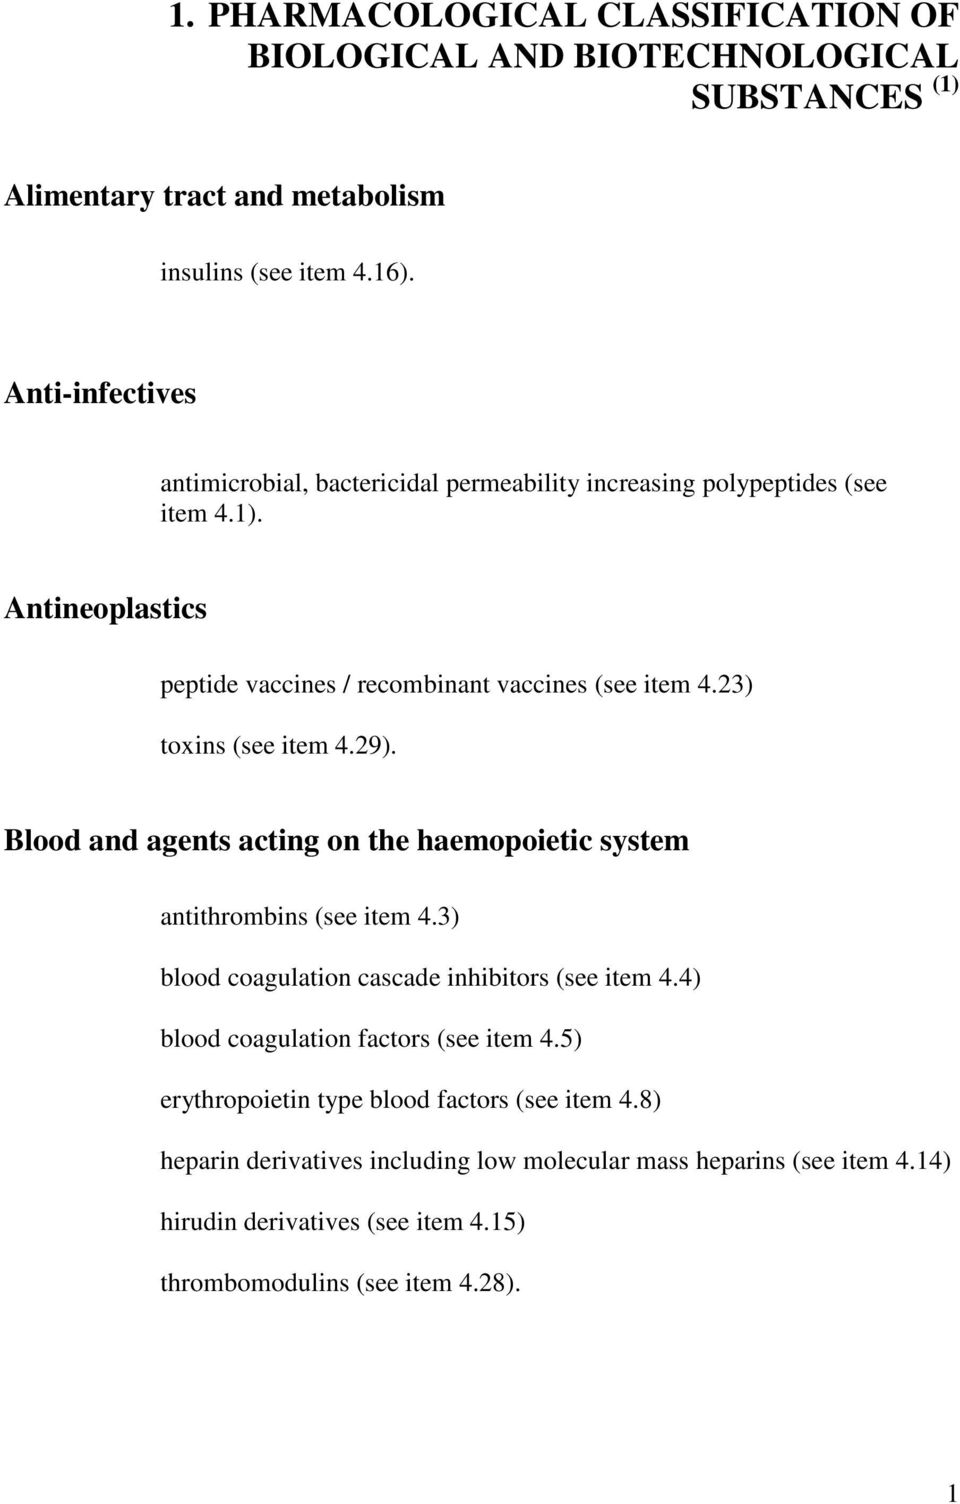 23) toxins (see item 4.29). Blood and agents acting on the haemopoietic system antithrombins (see item 4.3) blood coagulation cascade inhibitors (see item 4.